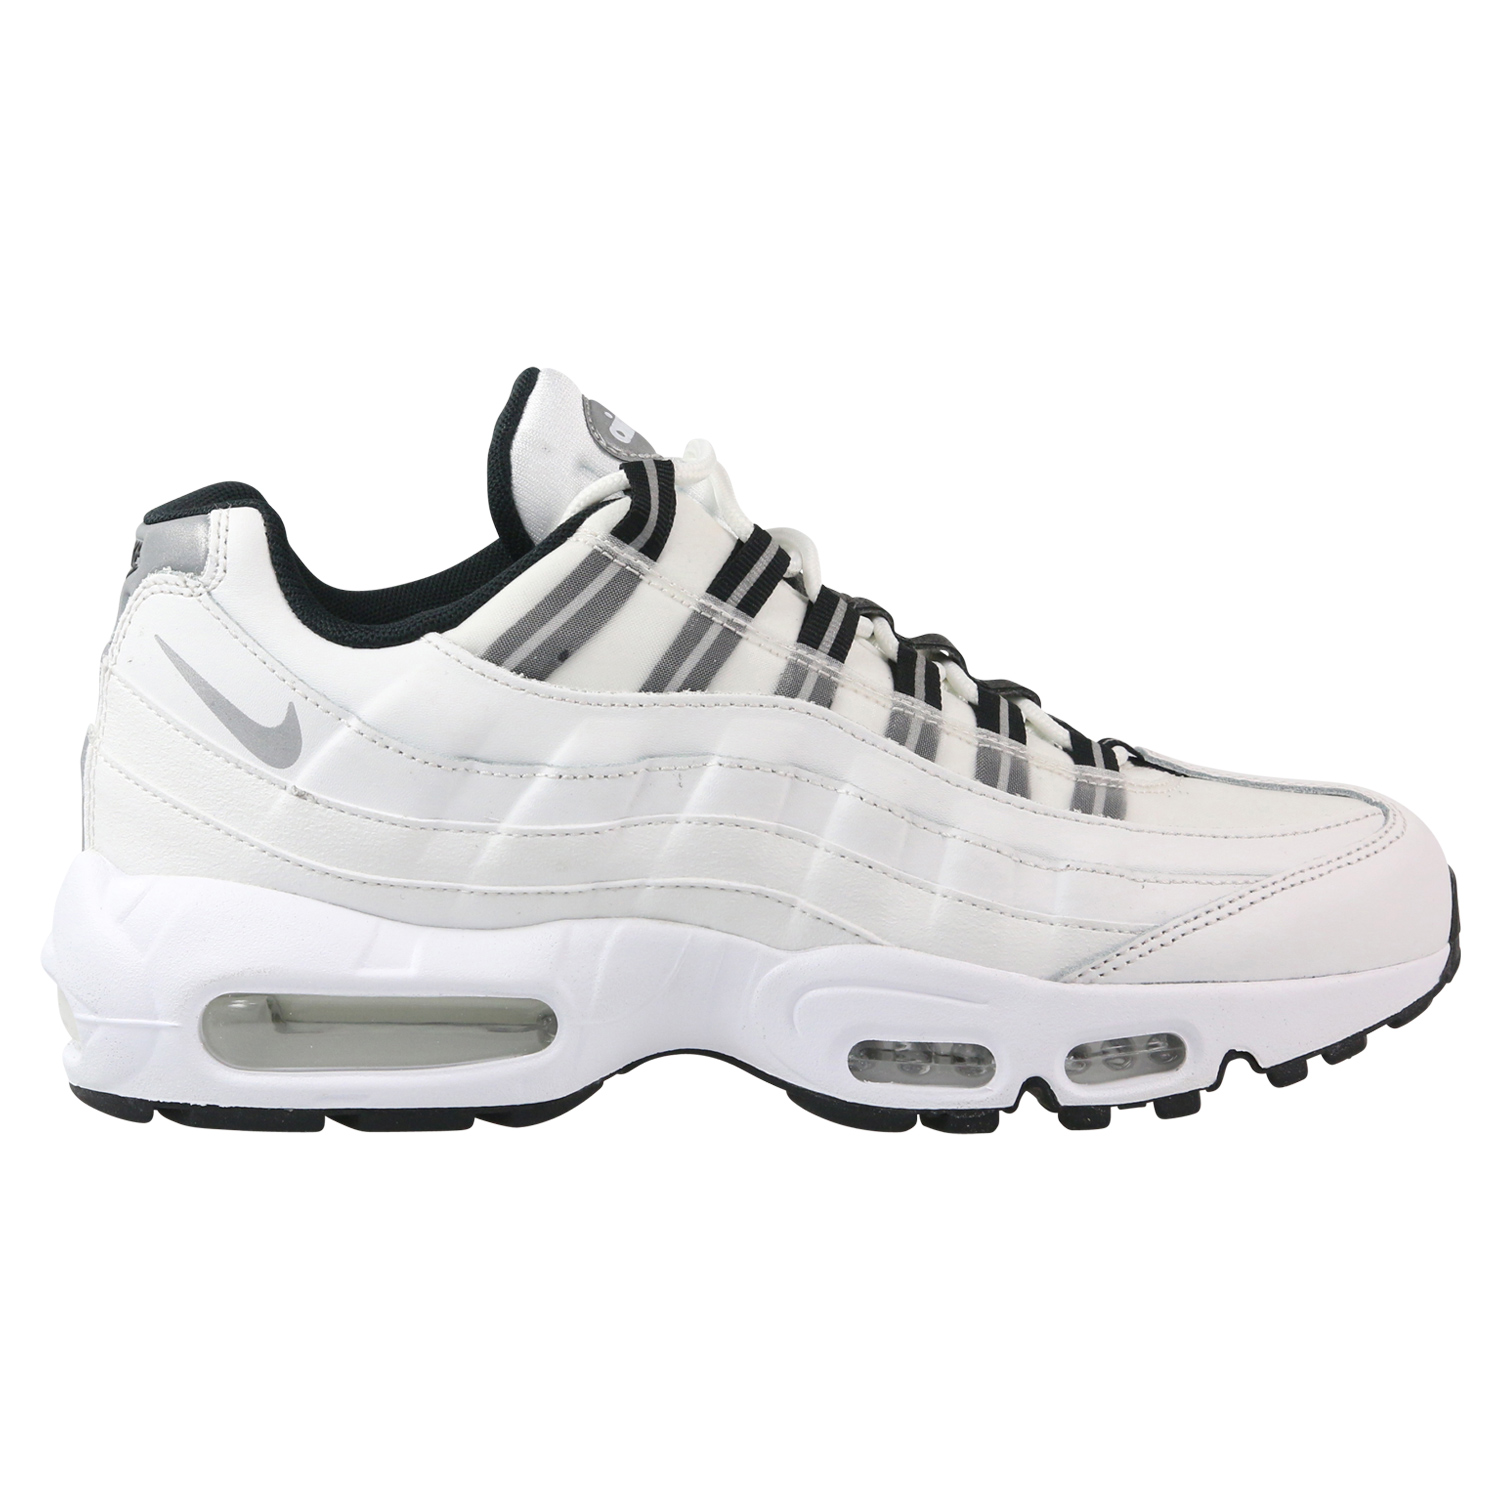 Details about Nike Air Max 95 OG Shoes Sneakers Womens 307960 113 White show original title